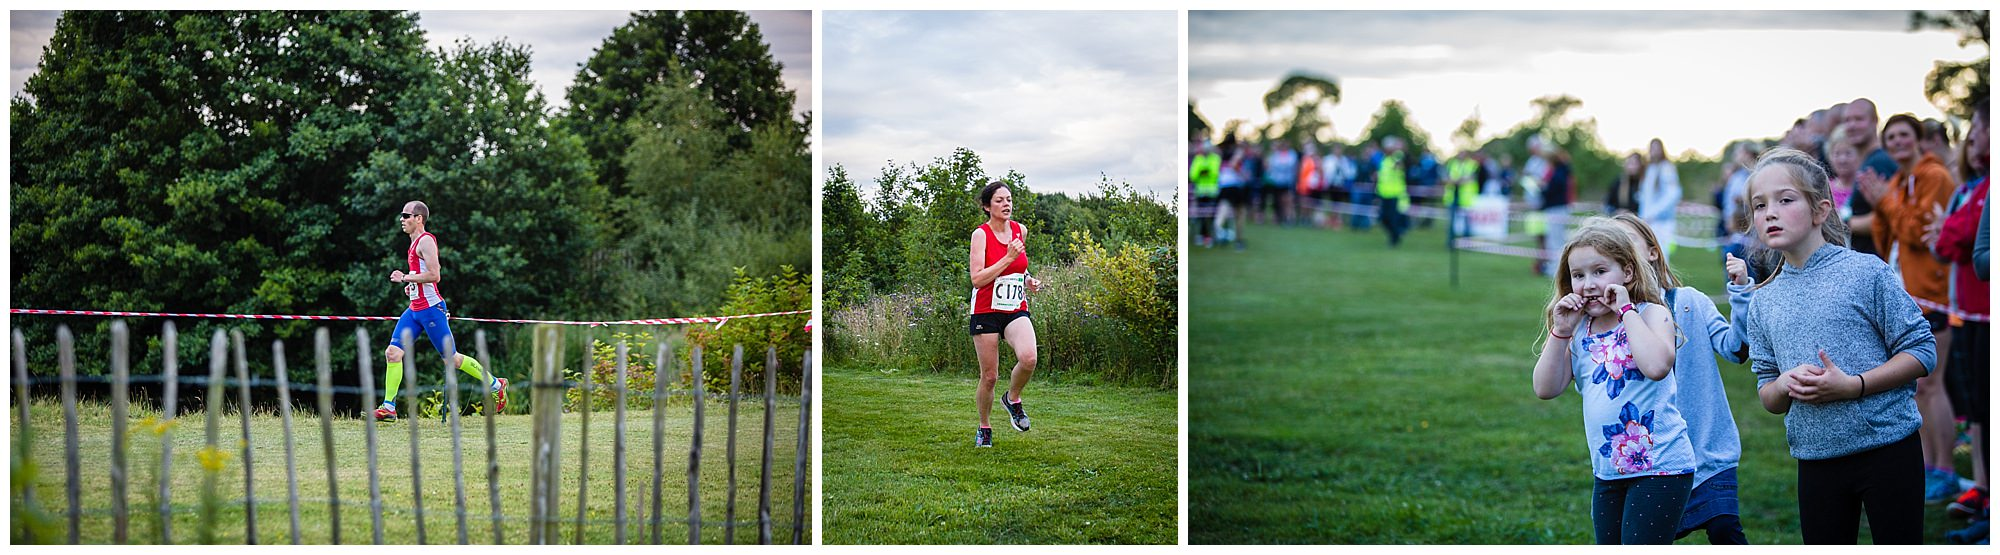 runners in action - shropshire running event photographer